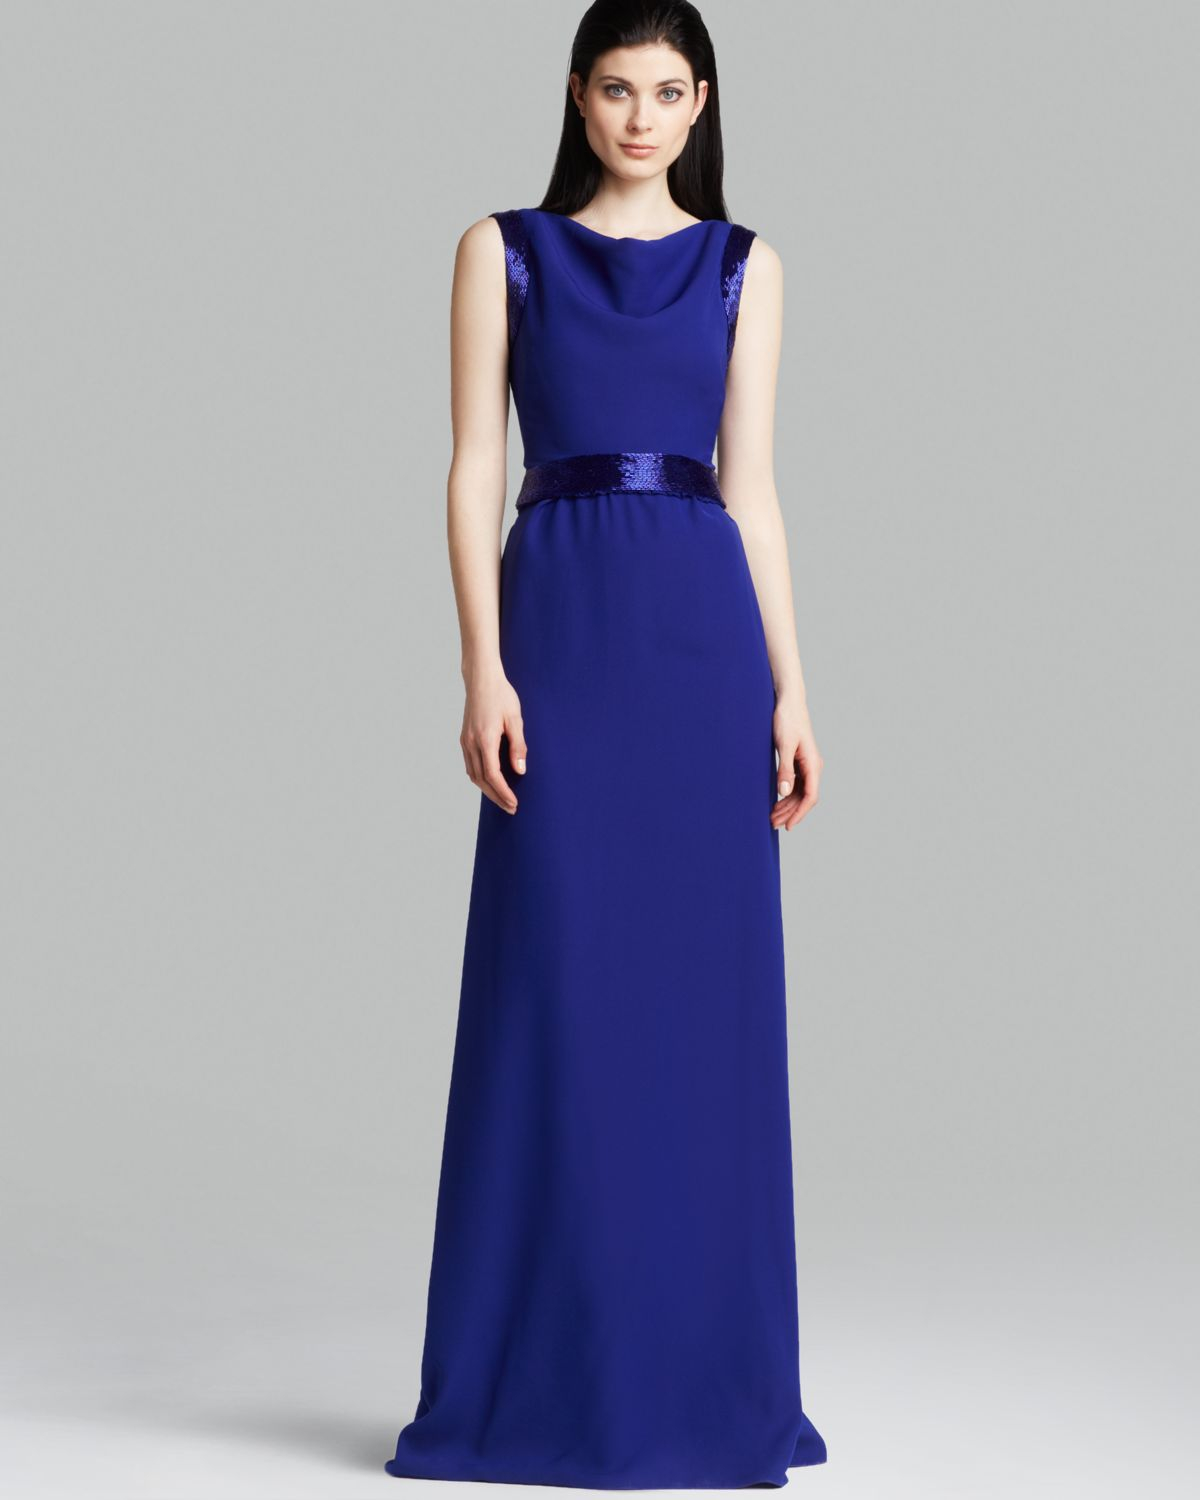 Lyst - Armani Gown - Sleeveless Beaded in Blue